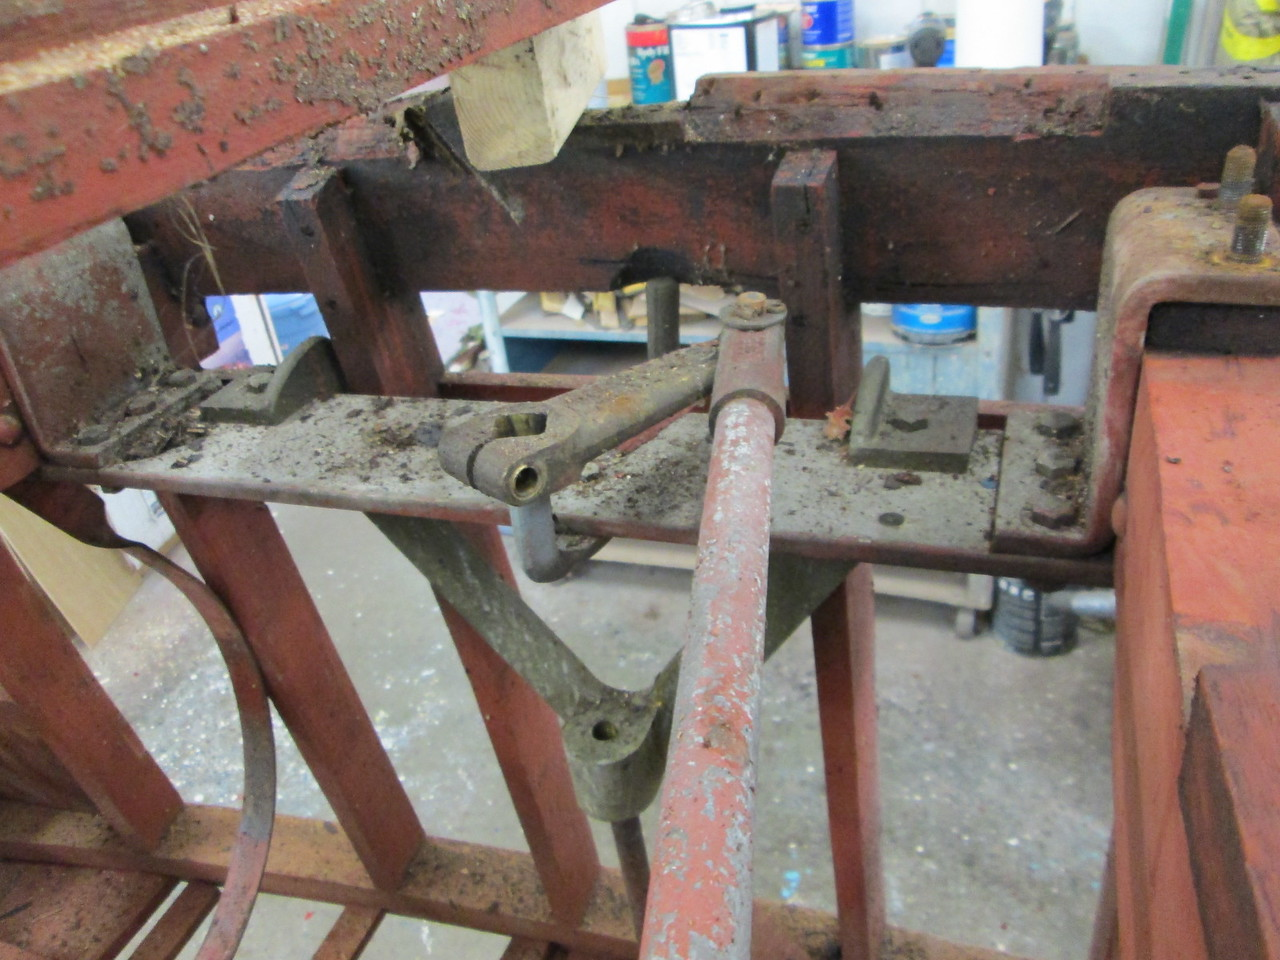 Rudder and lifting bracket support.